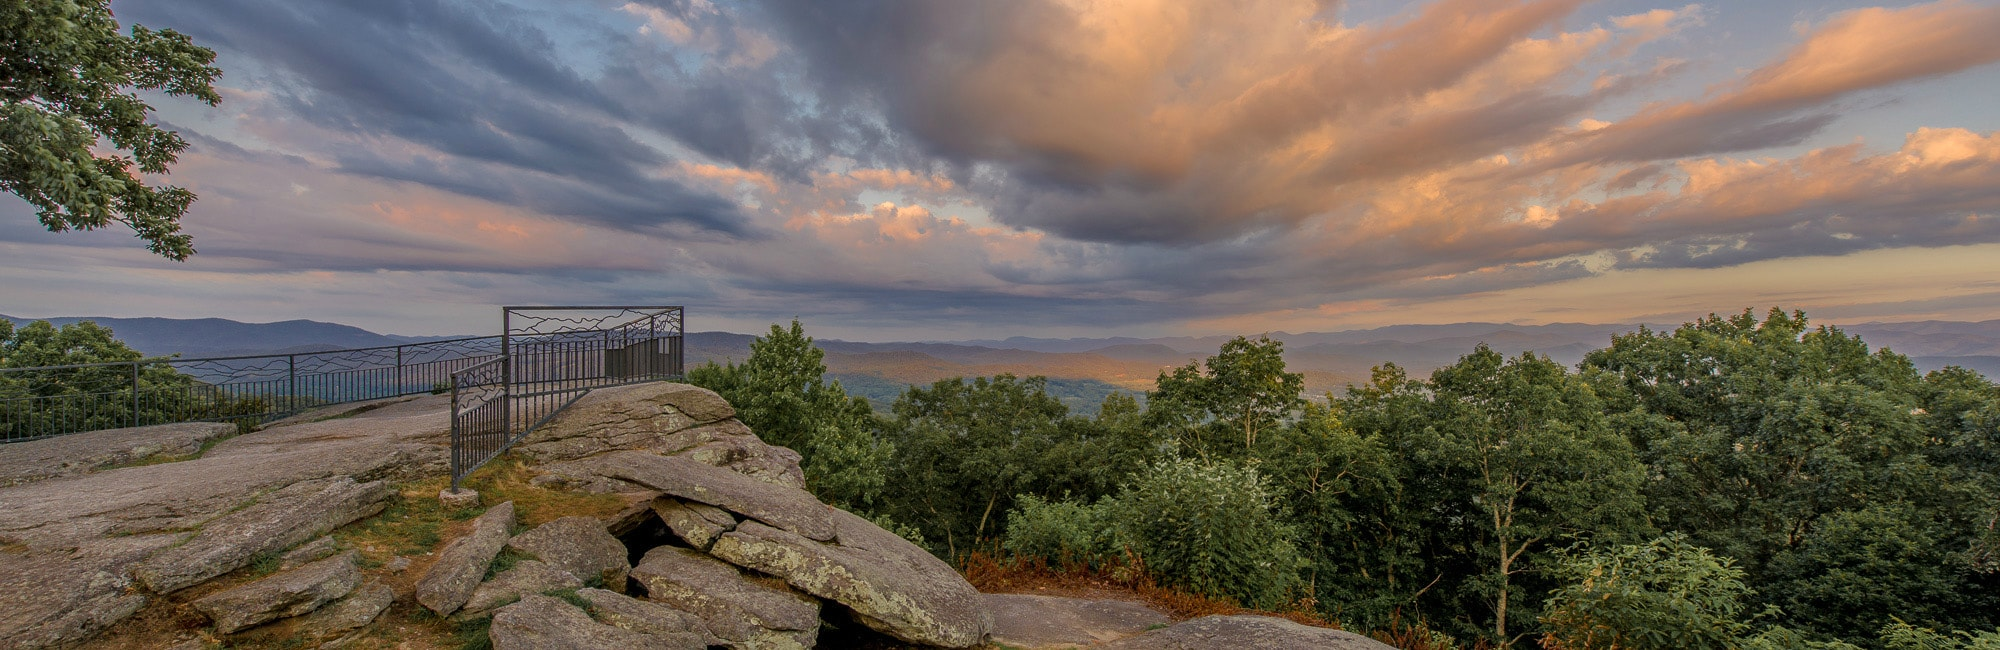 Mountain View Gallery In Hendersonville North Carolina